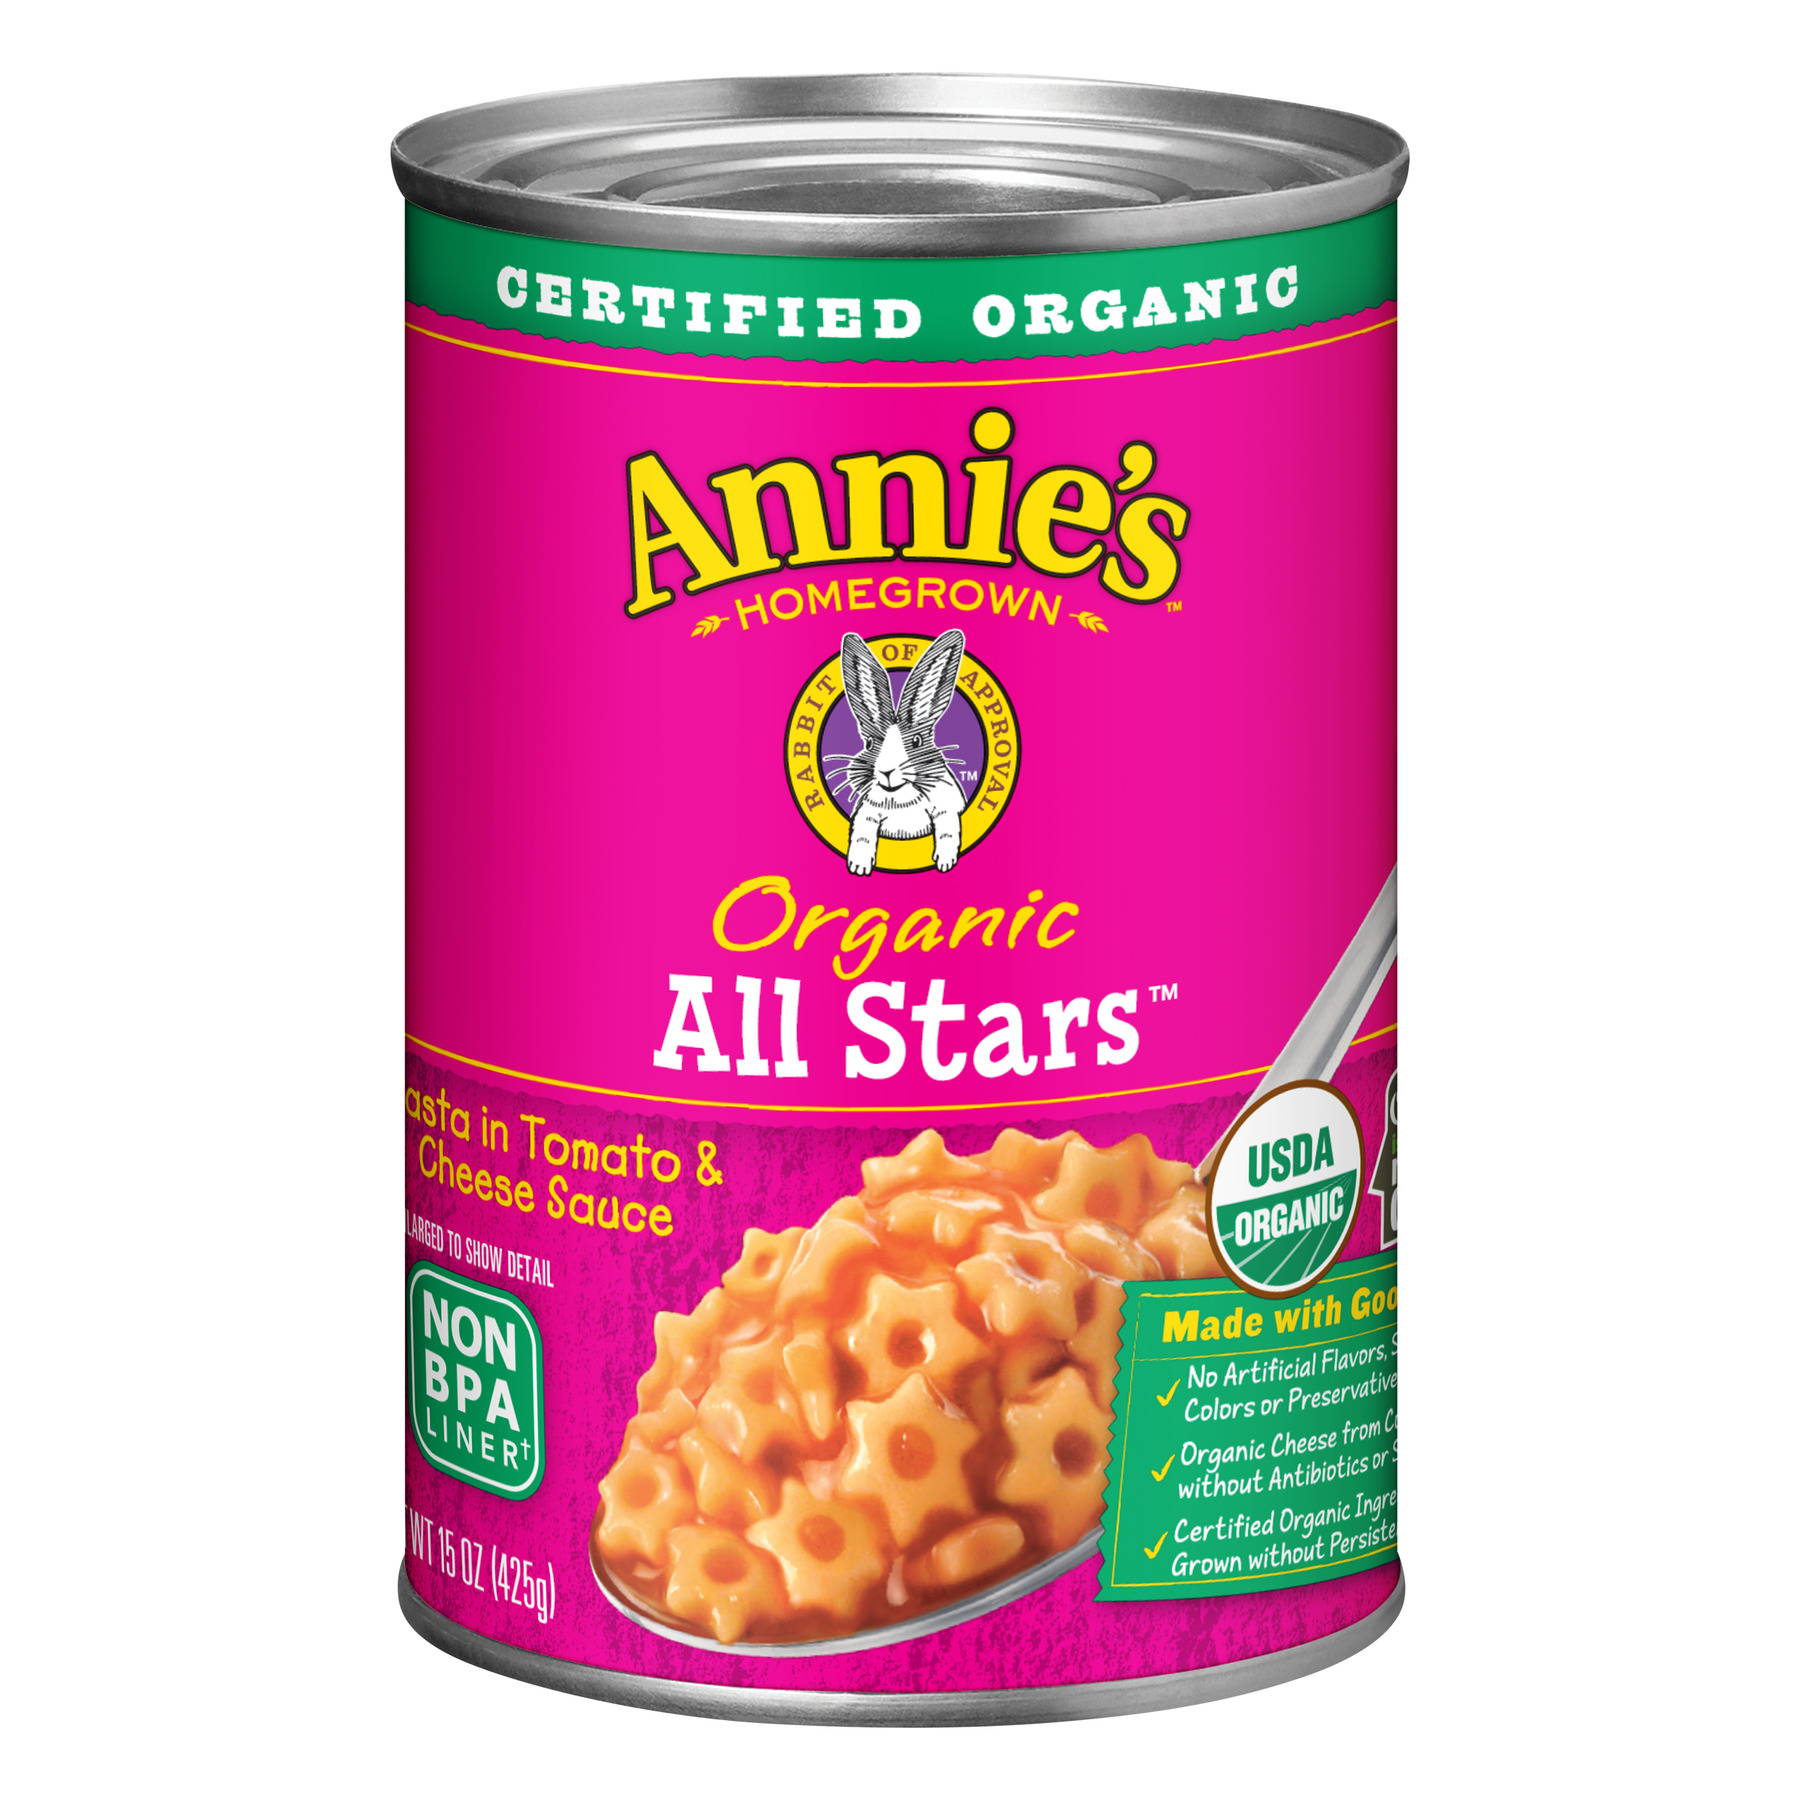 Annie's Organic Pasta All Stars Pasta in Tomato & Cheese Sauce 15 oz